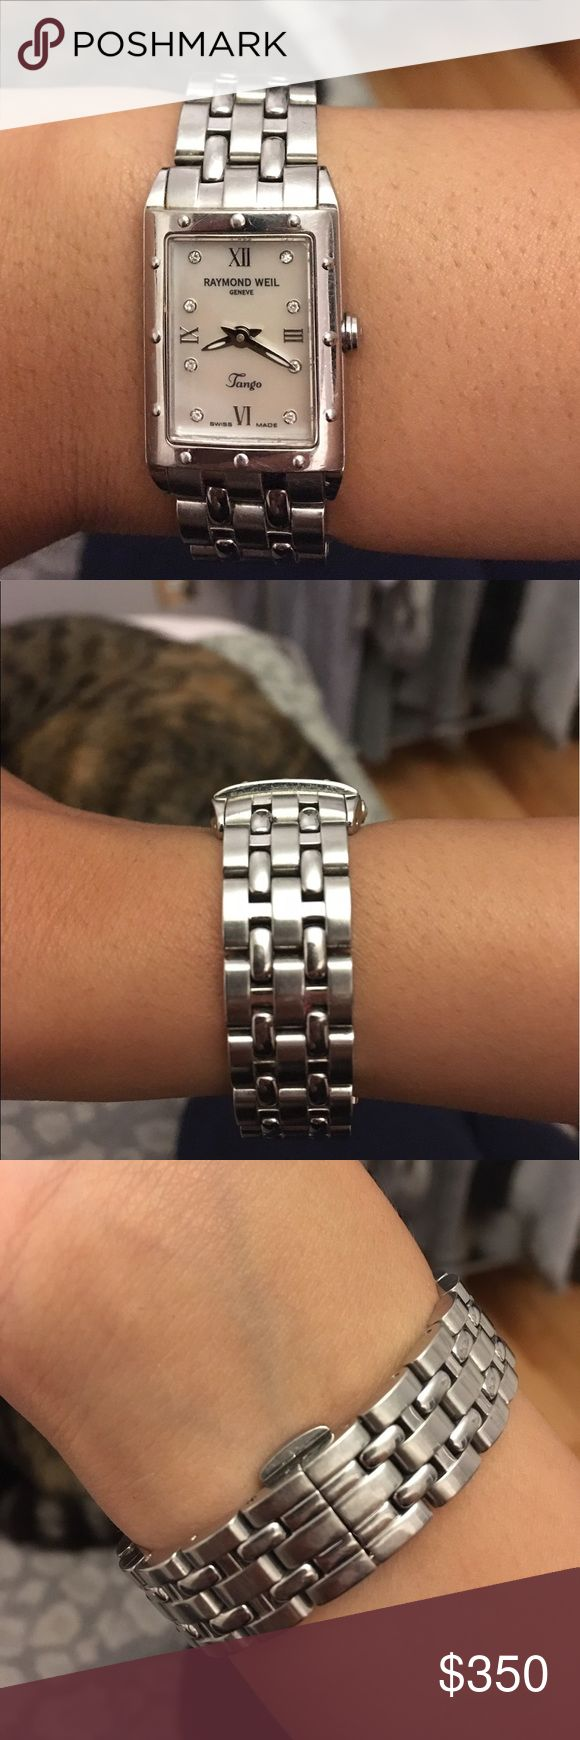 Raymond Weil Swiss made watch This Raymond Weil watch is Swiss made and has real diamonds on the face. It can use some polishing but is a very classy watch minor scratches. Raymond Weil Accessories Watches